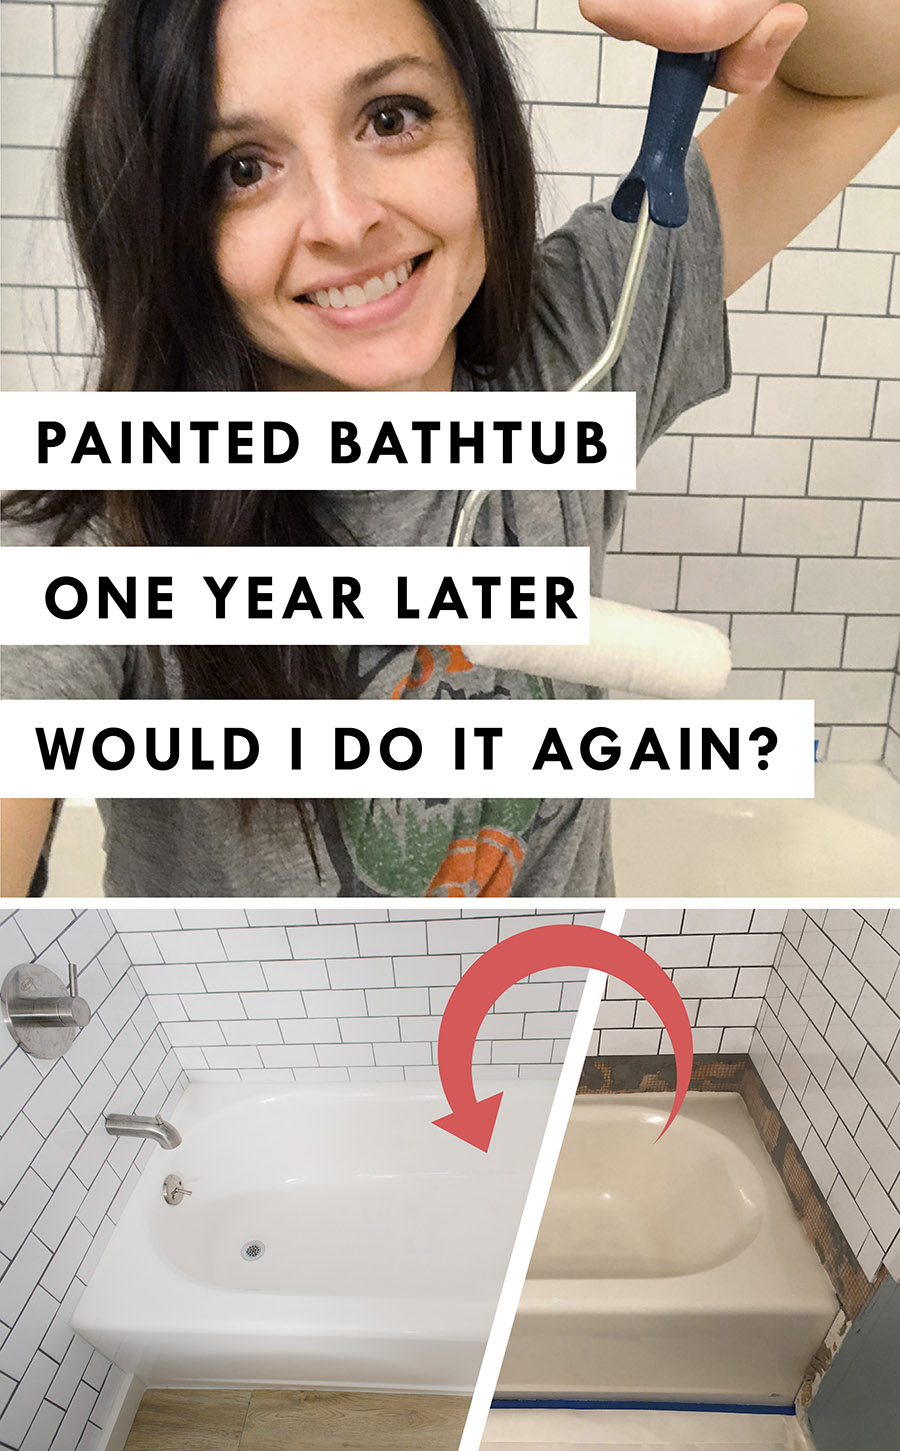 What I think of my Painted Bathtub One Year Later